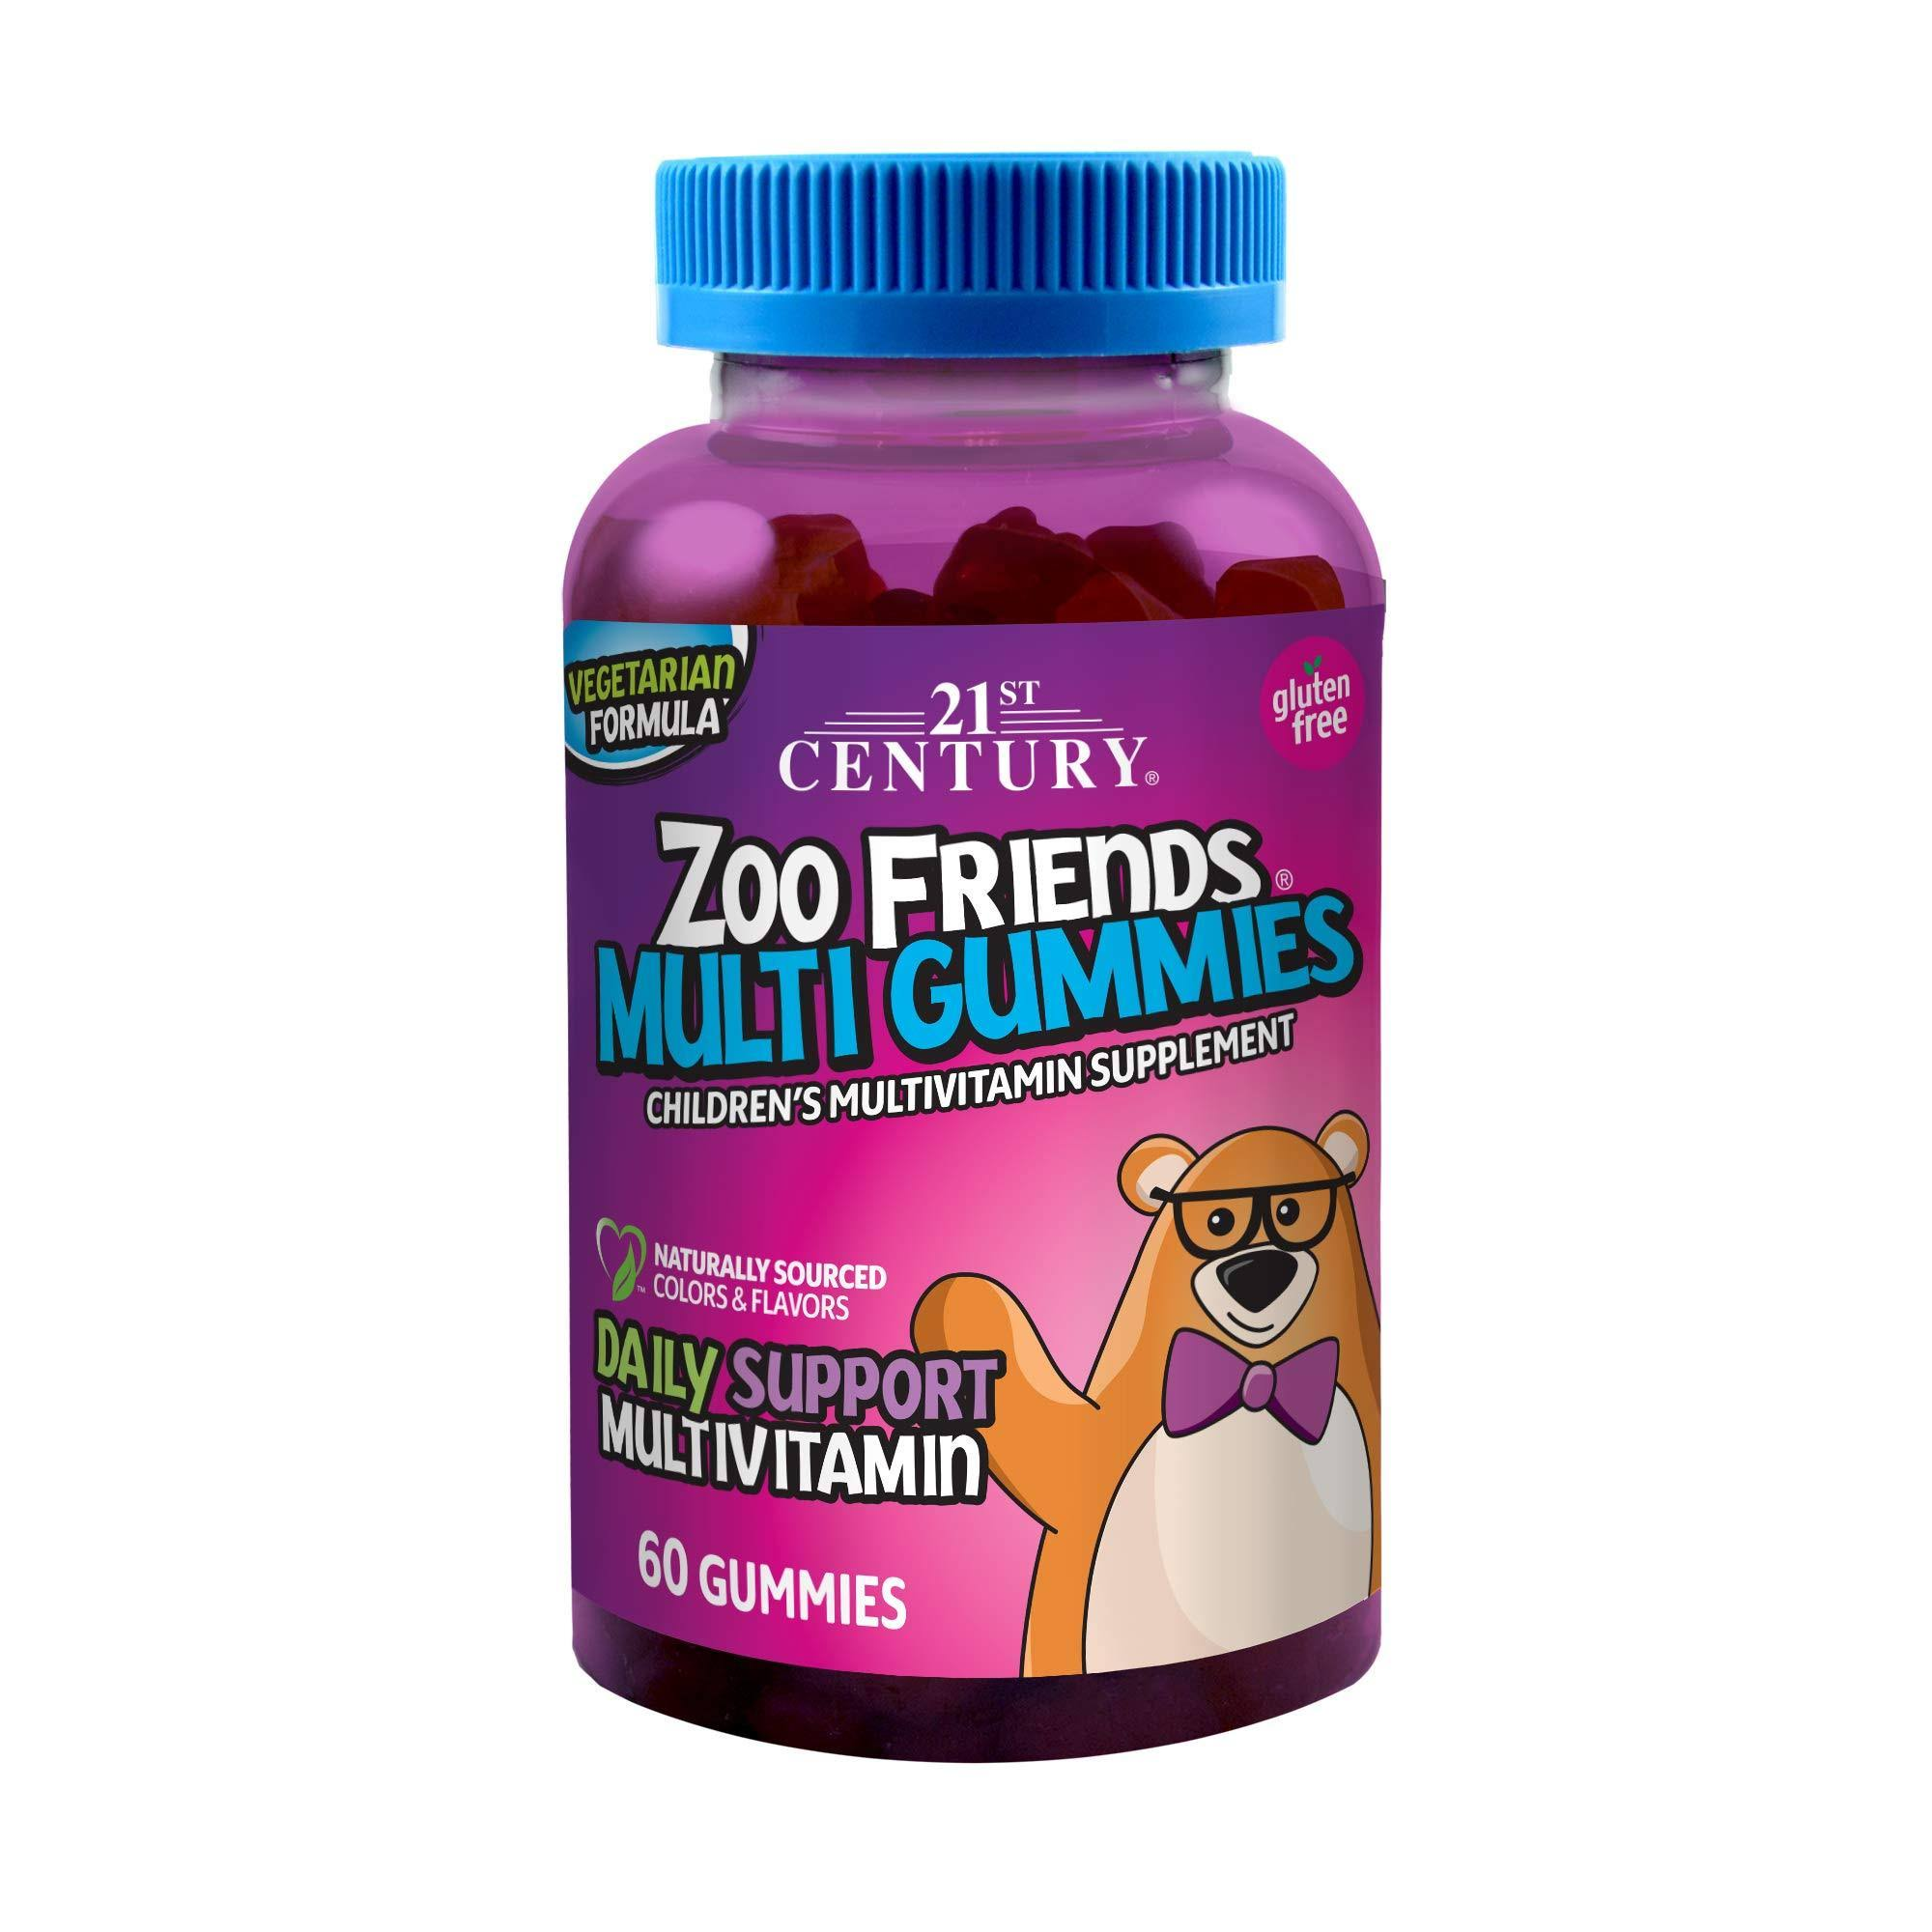 21st Century Zoo Friends Children's Multivitamin Supplement - Fruit, 60 Gummies